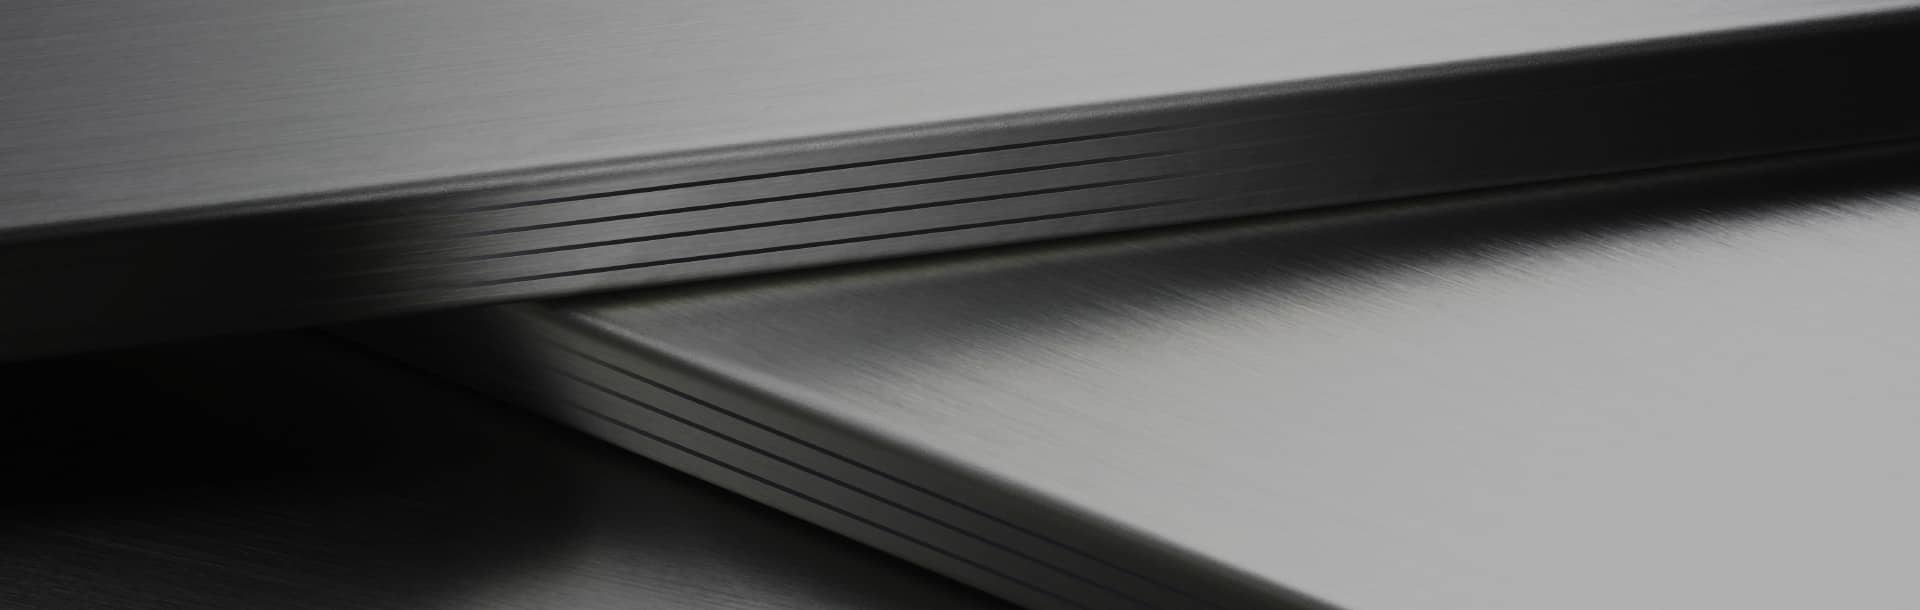 sheet FREE TO CUSTOM CUTS CUTTING 10mm 316 Stainless steel plate ALL SIZES